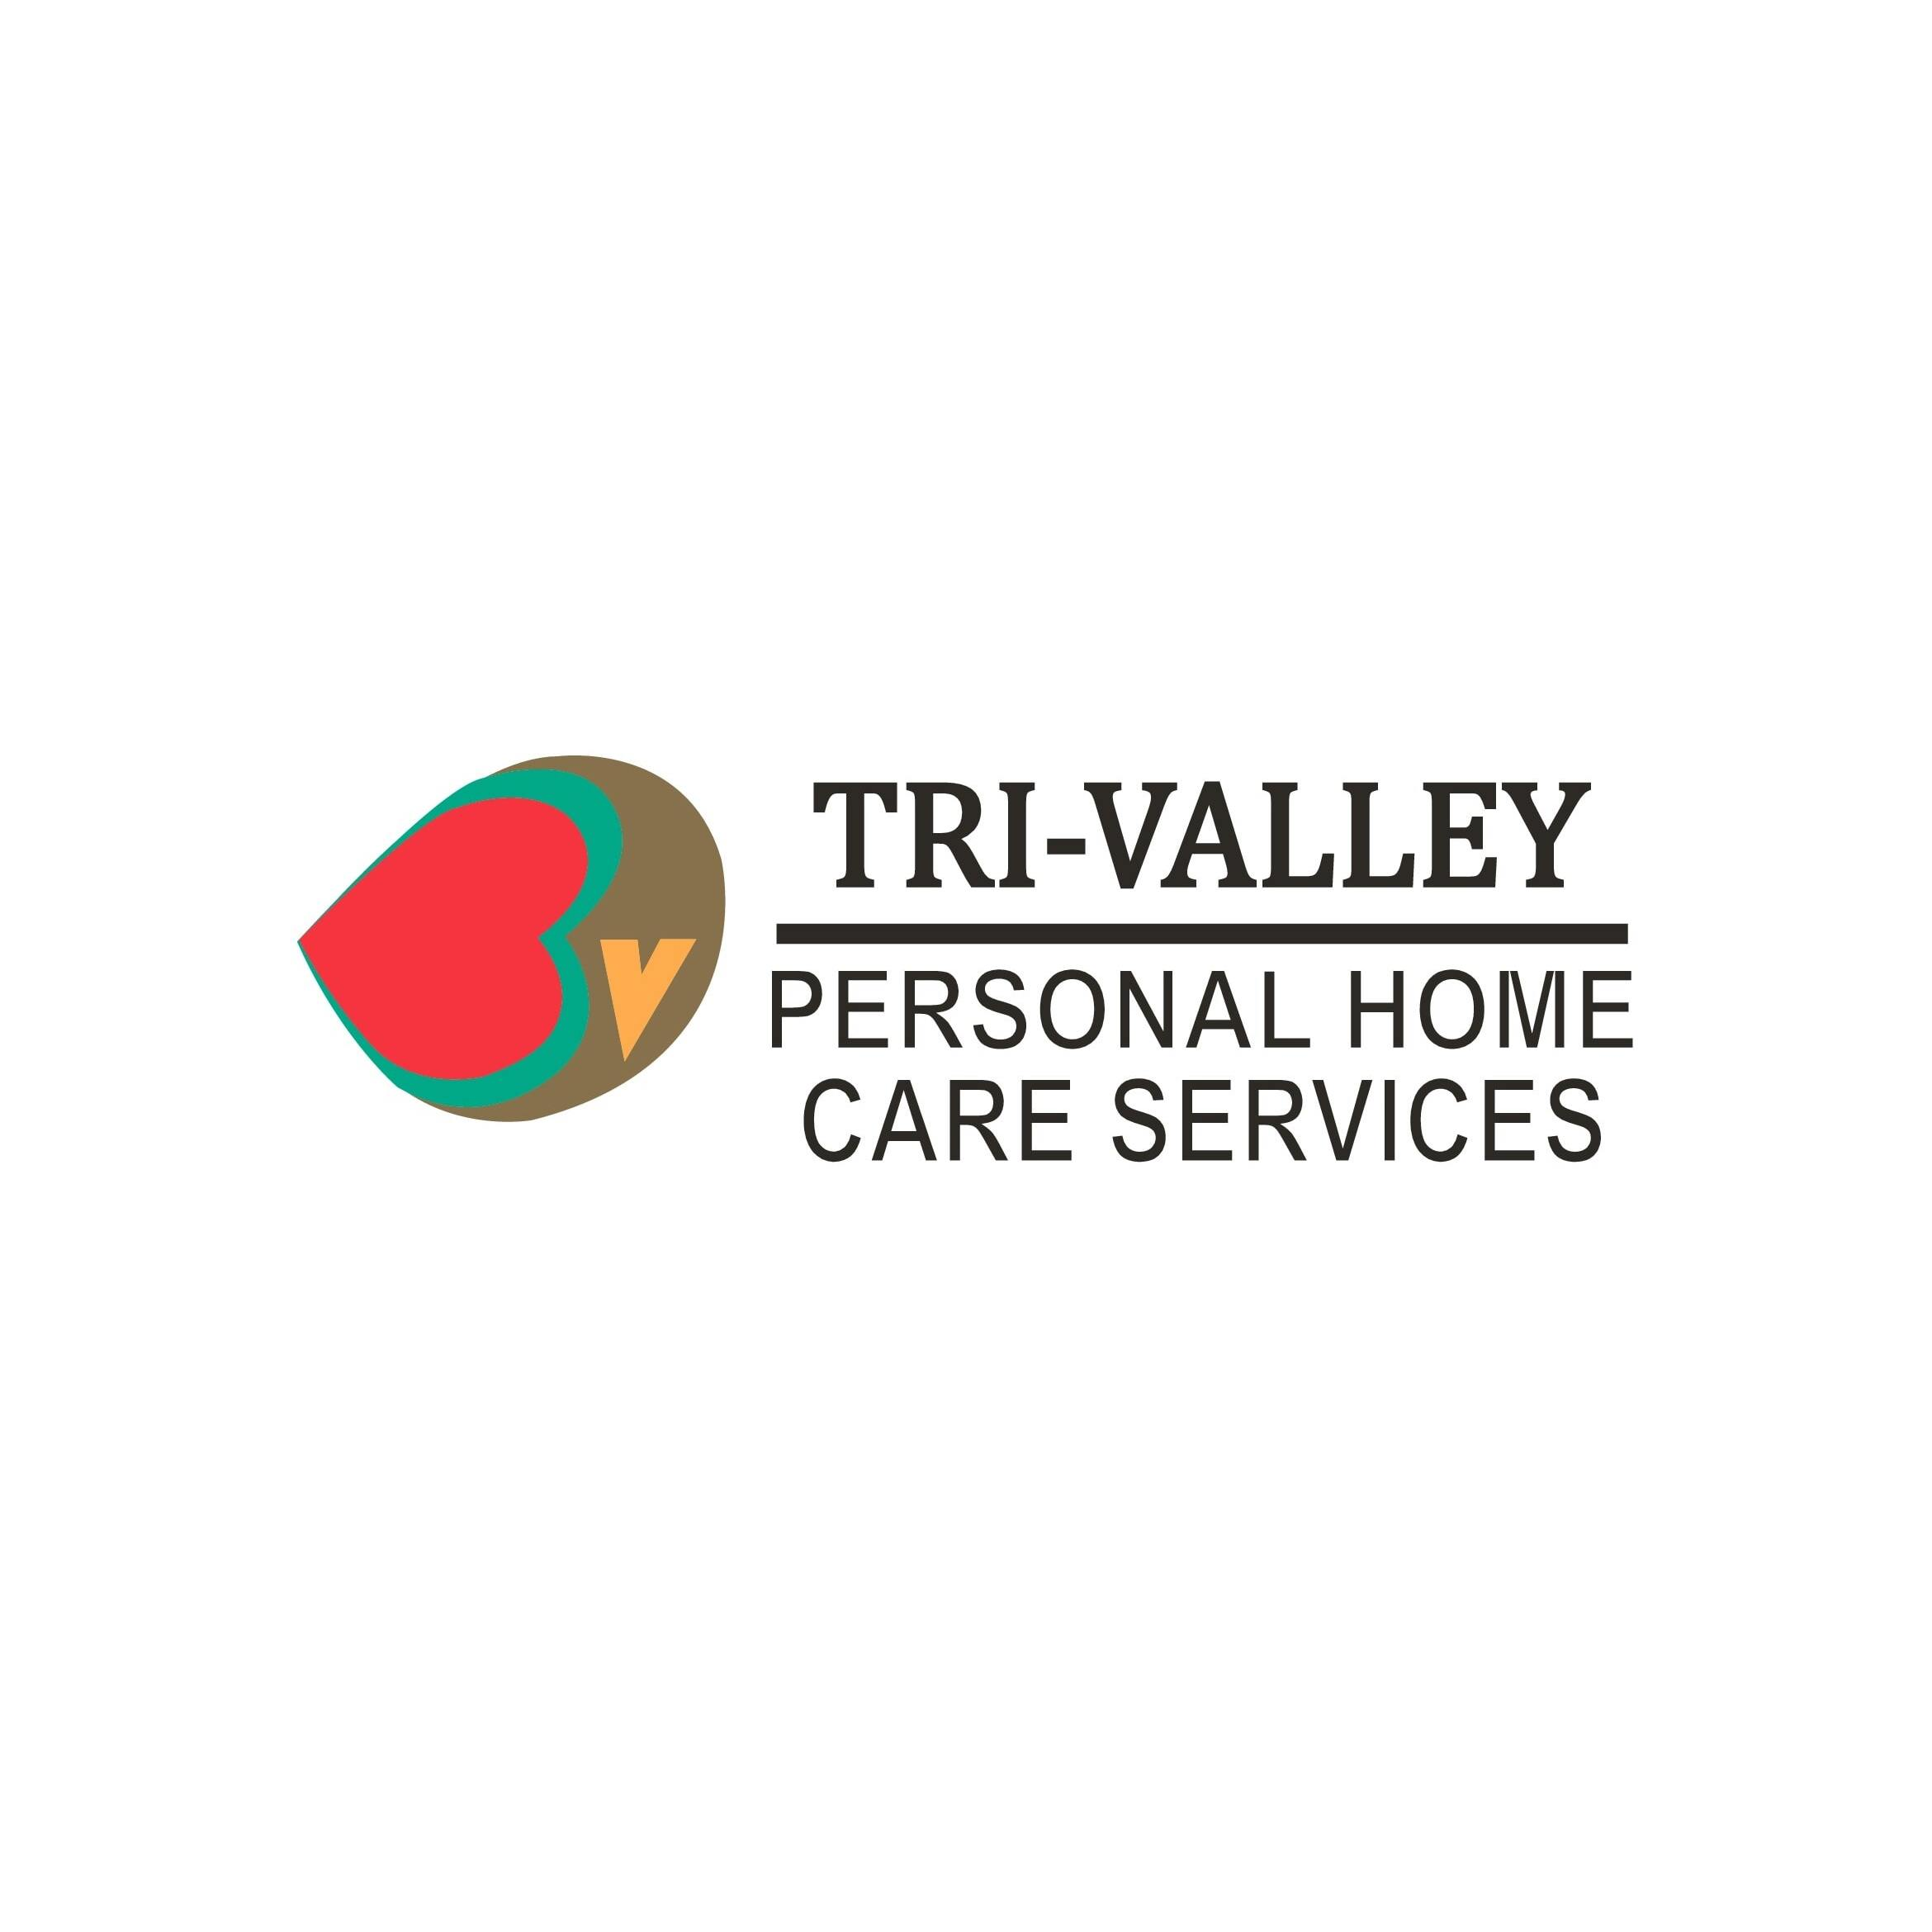 Tri-Valley Personal Home Care Services